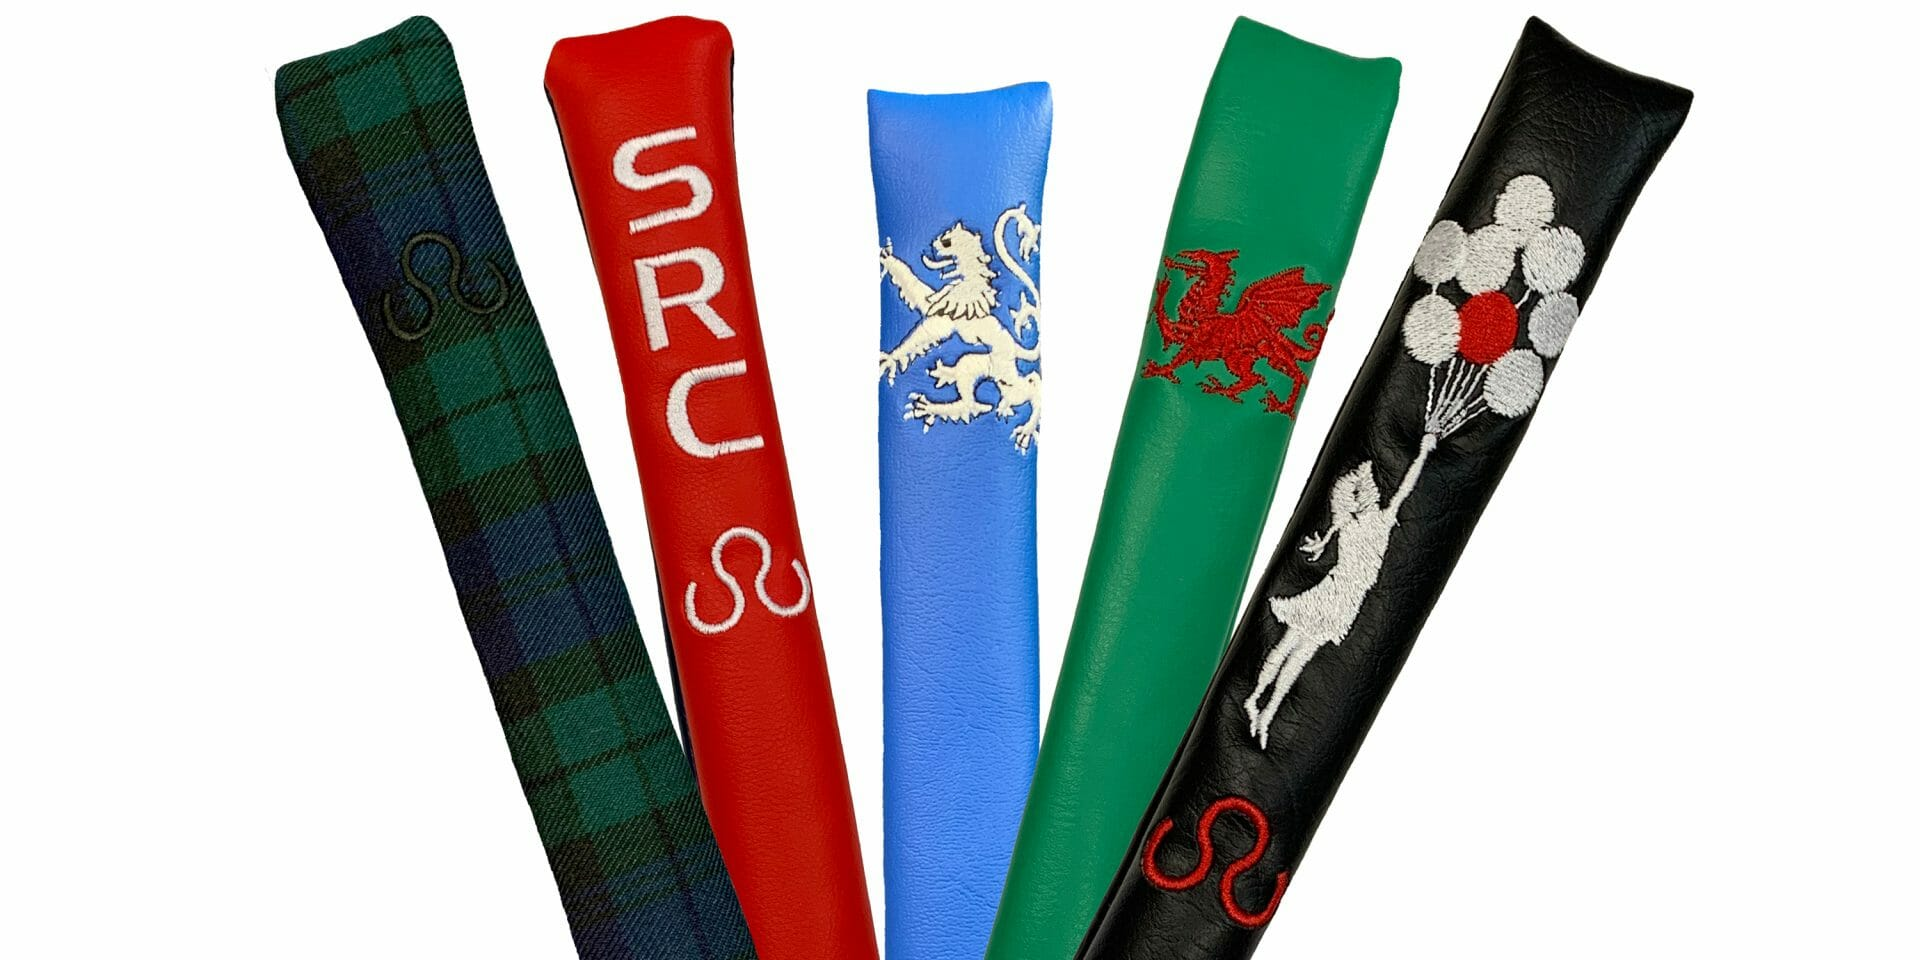 golf-shop-alignment-drill-stick-covers-src-shop